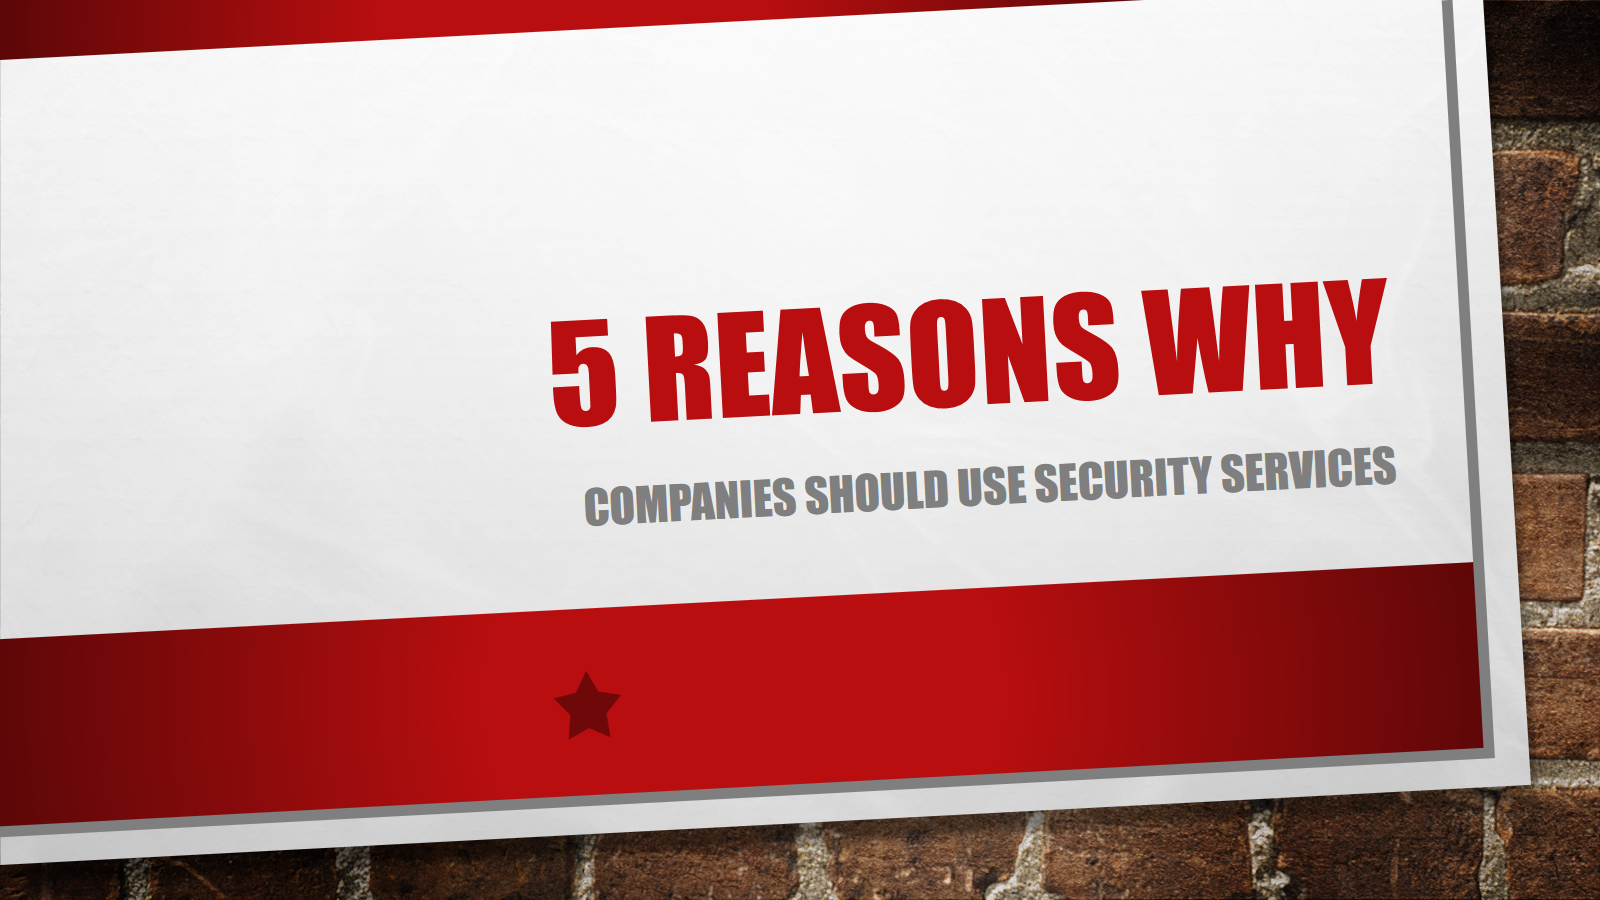 5 Reasons why Companies should use Security Services